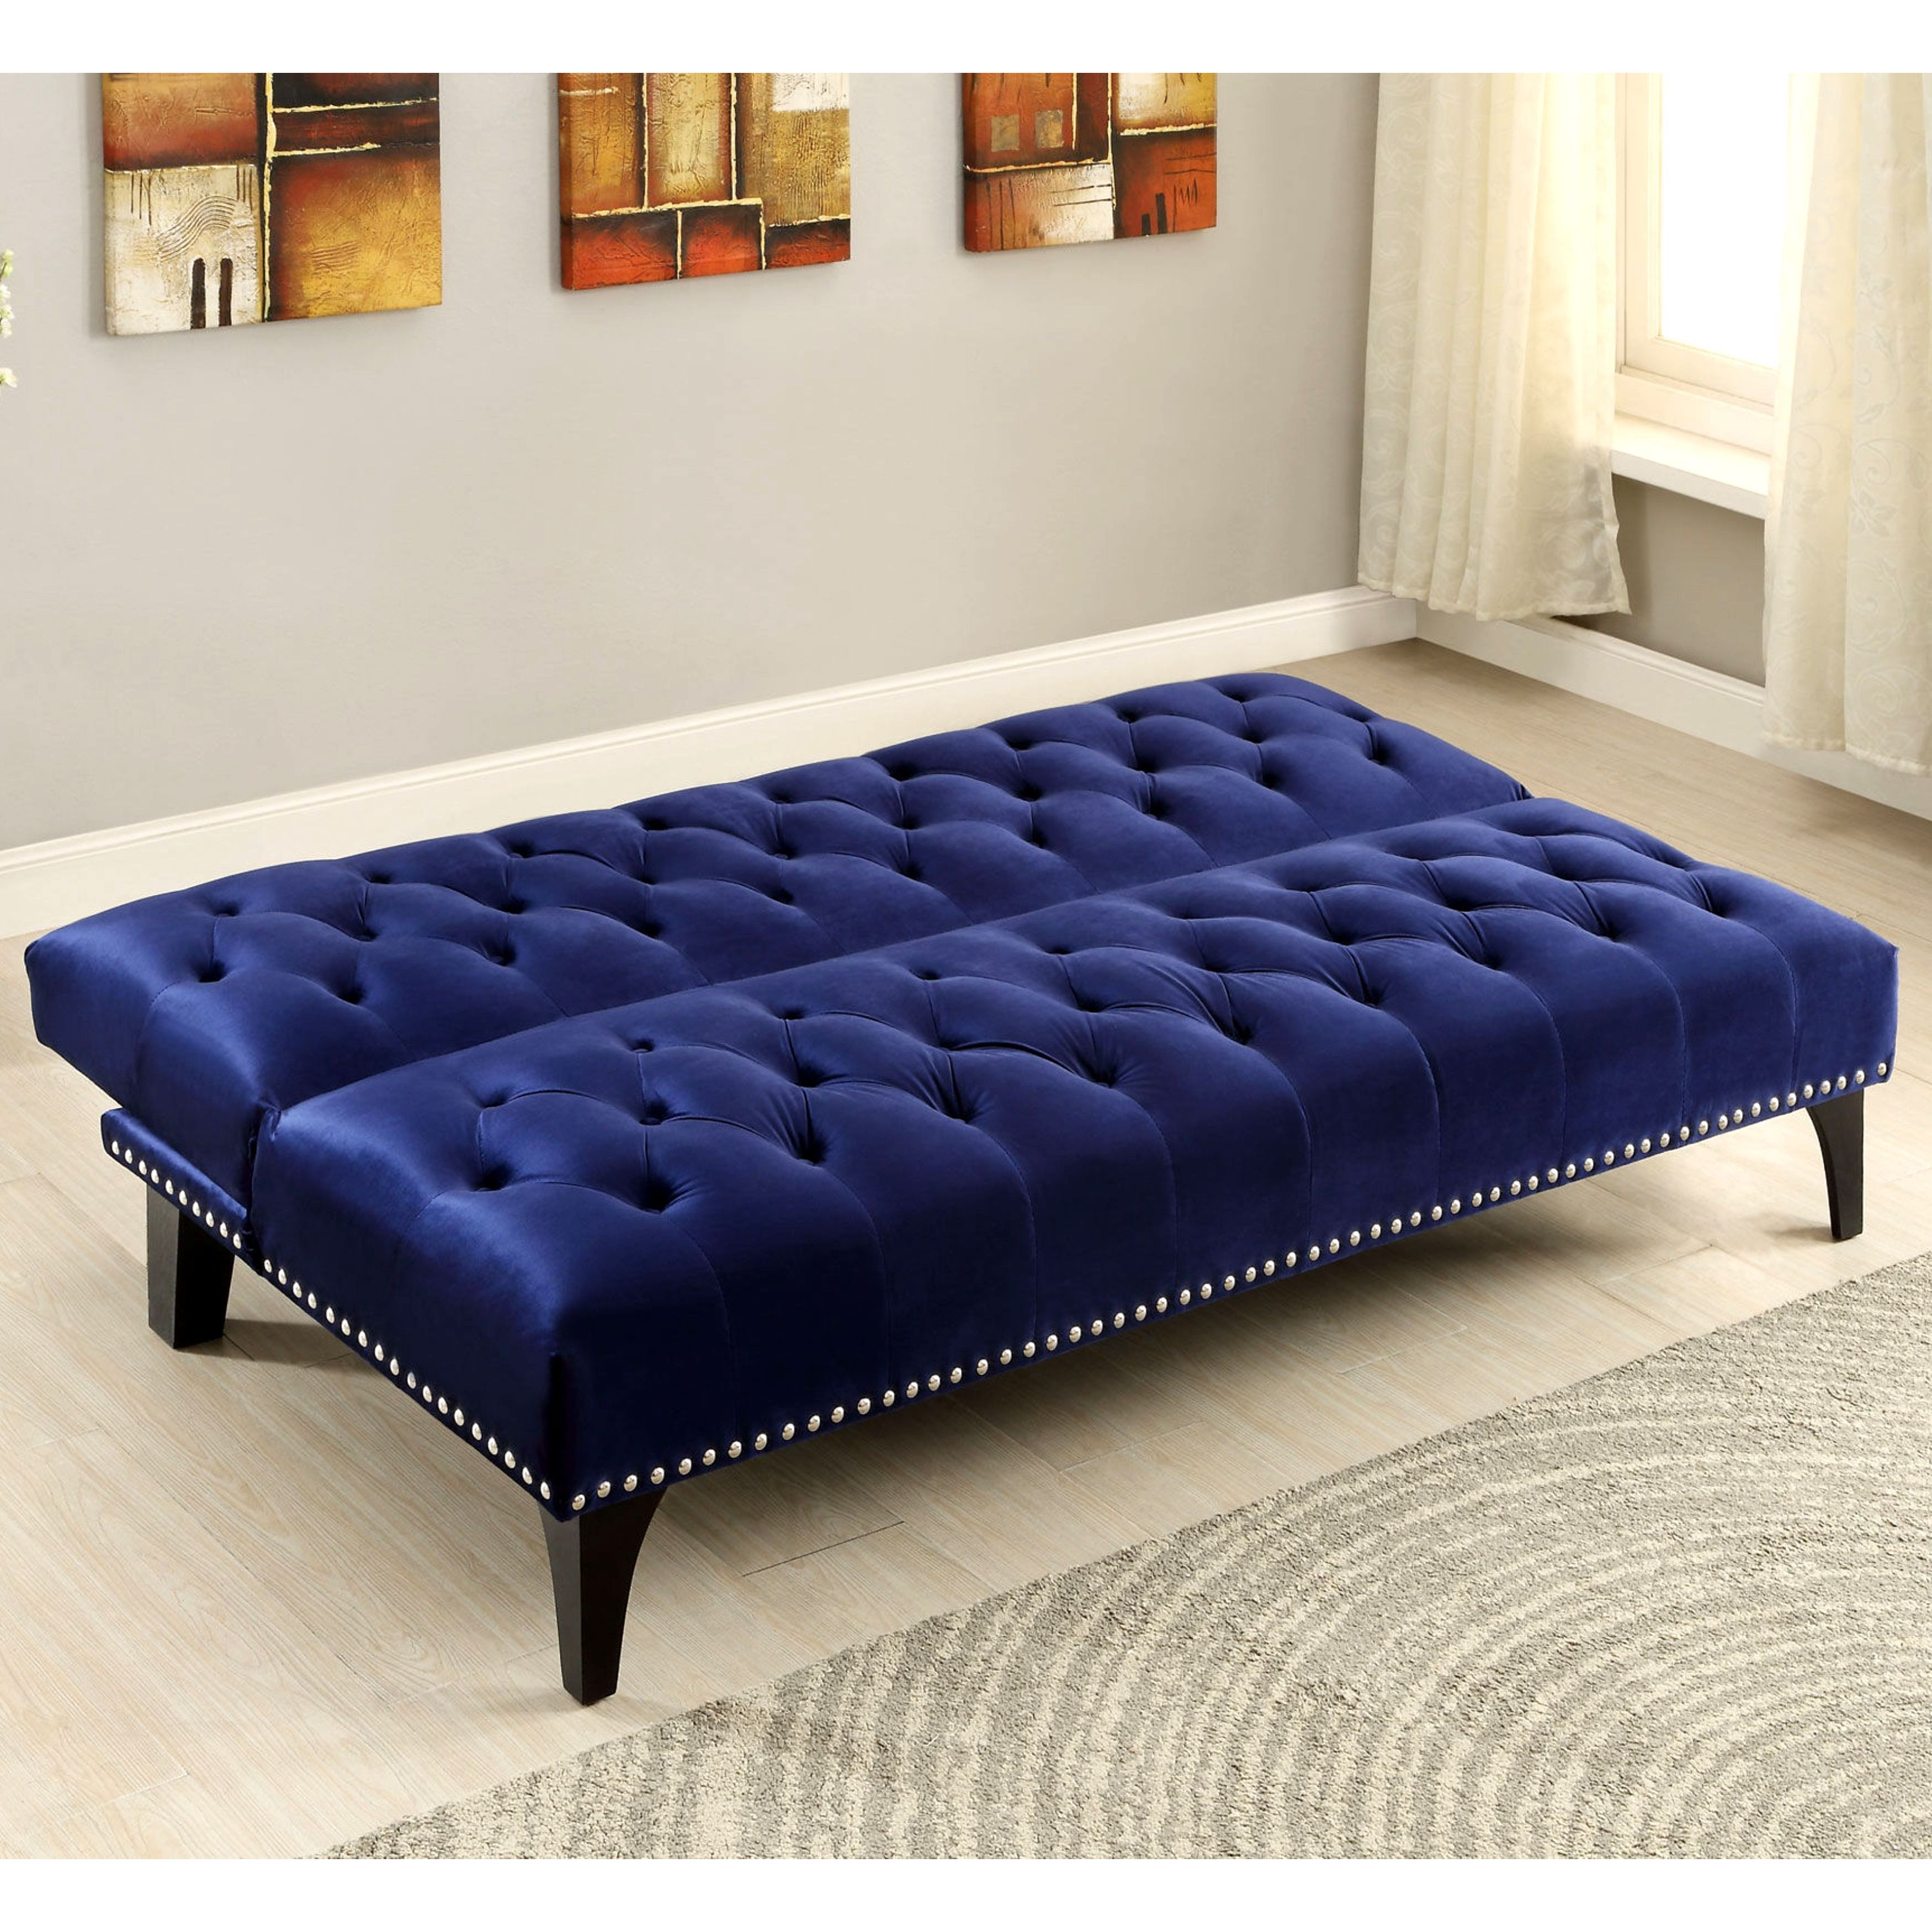 Royal Blue Velvet Sofa Bed Lounger